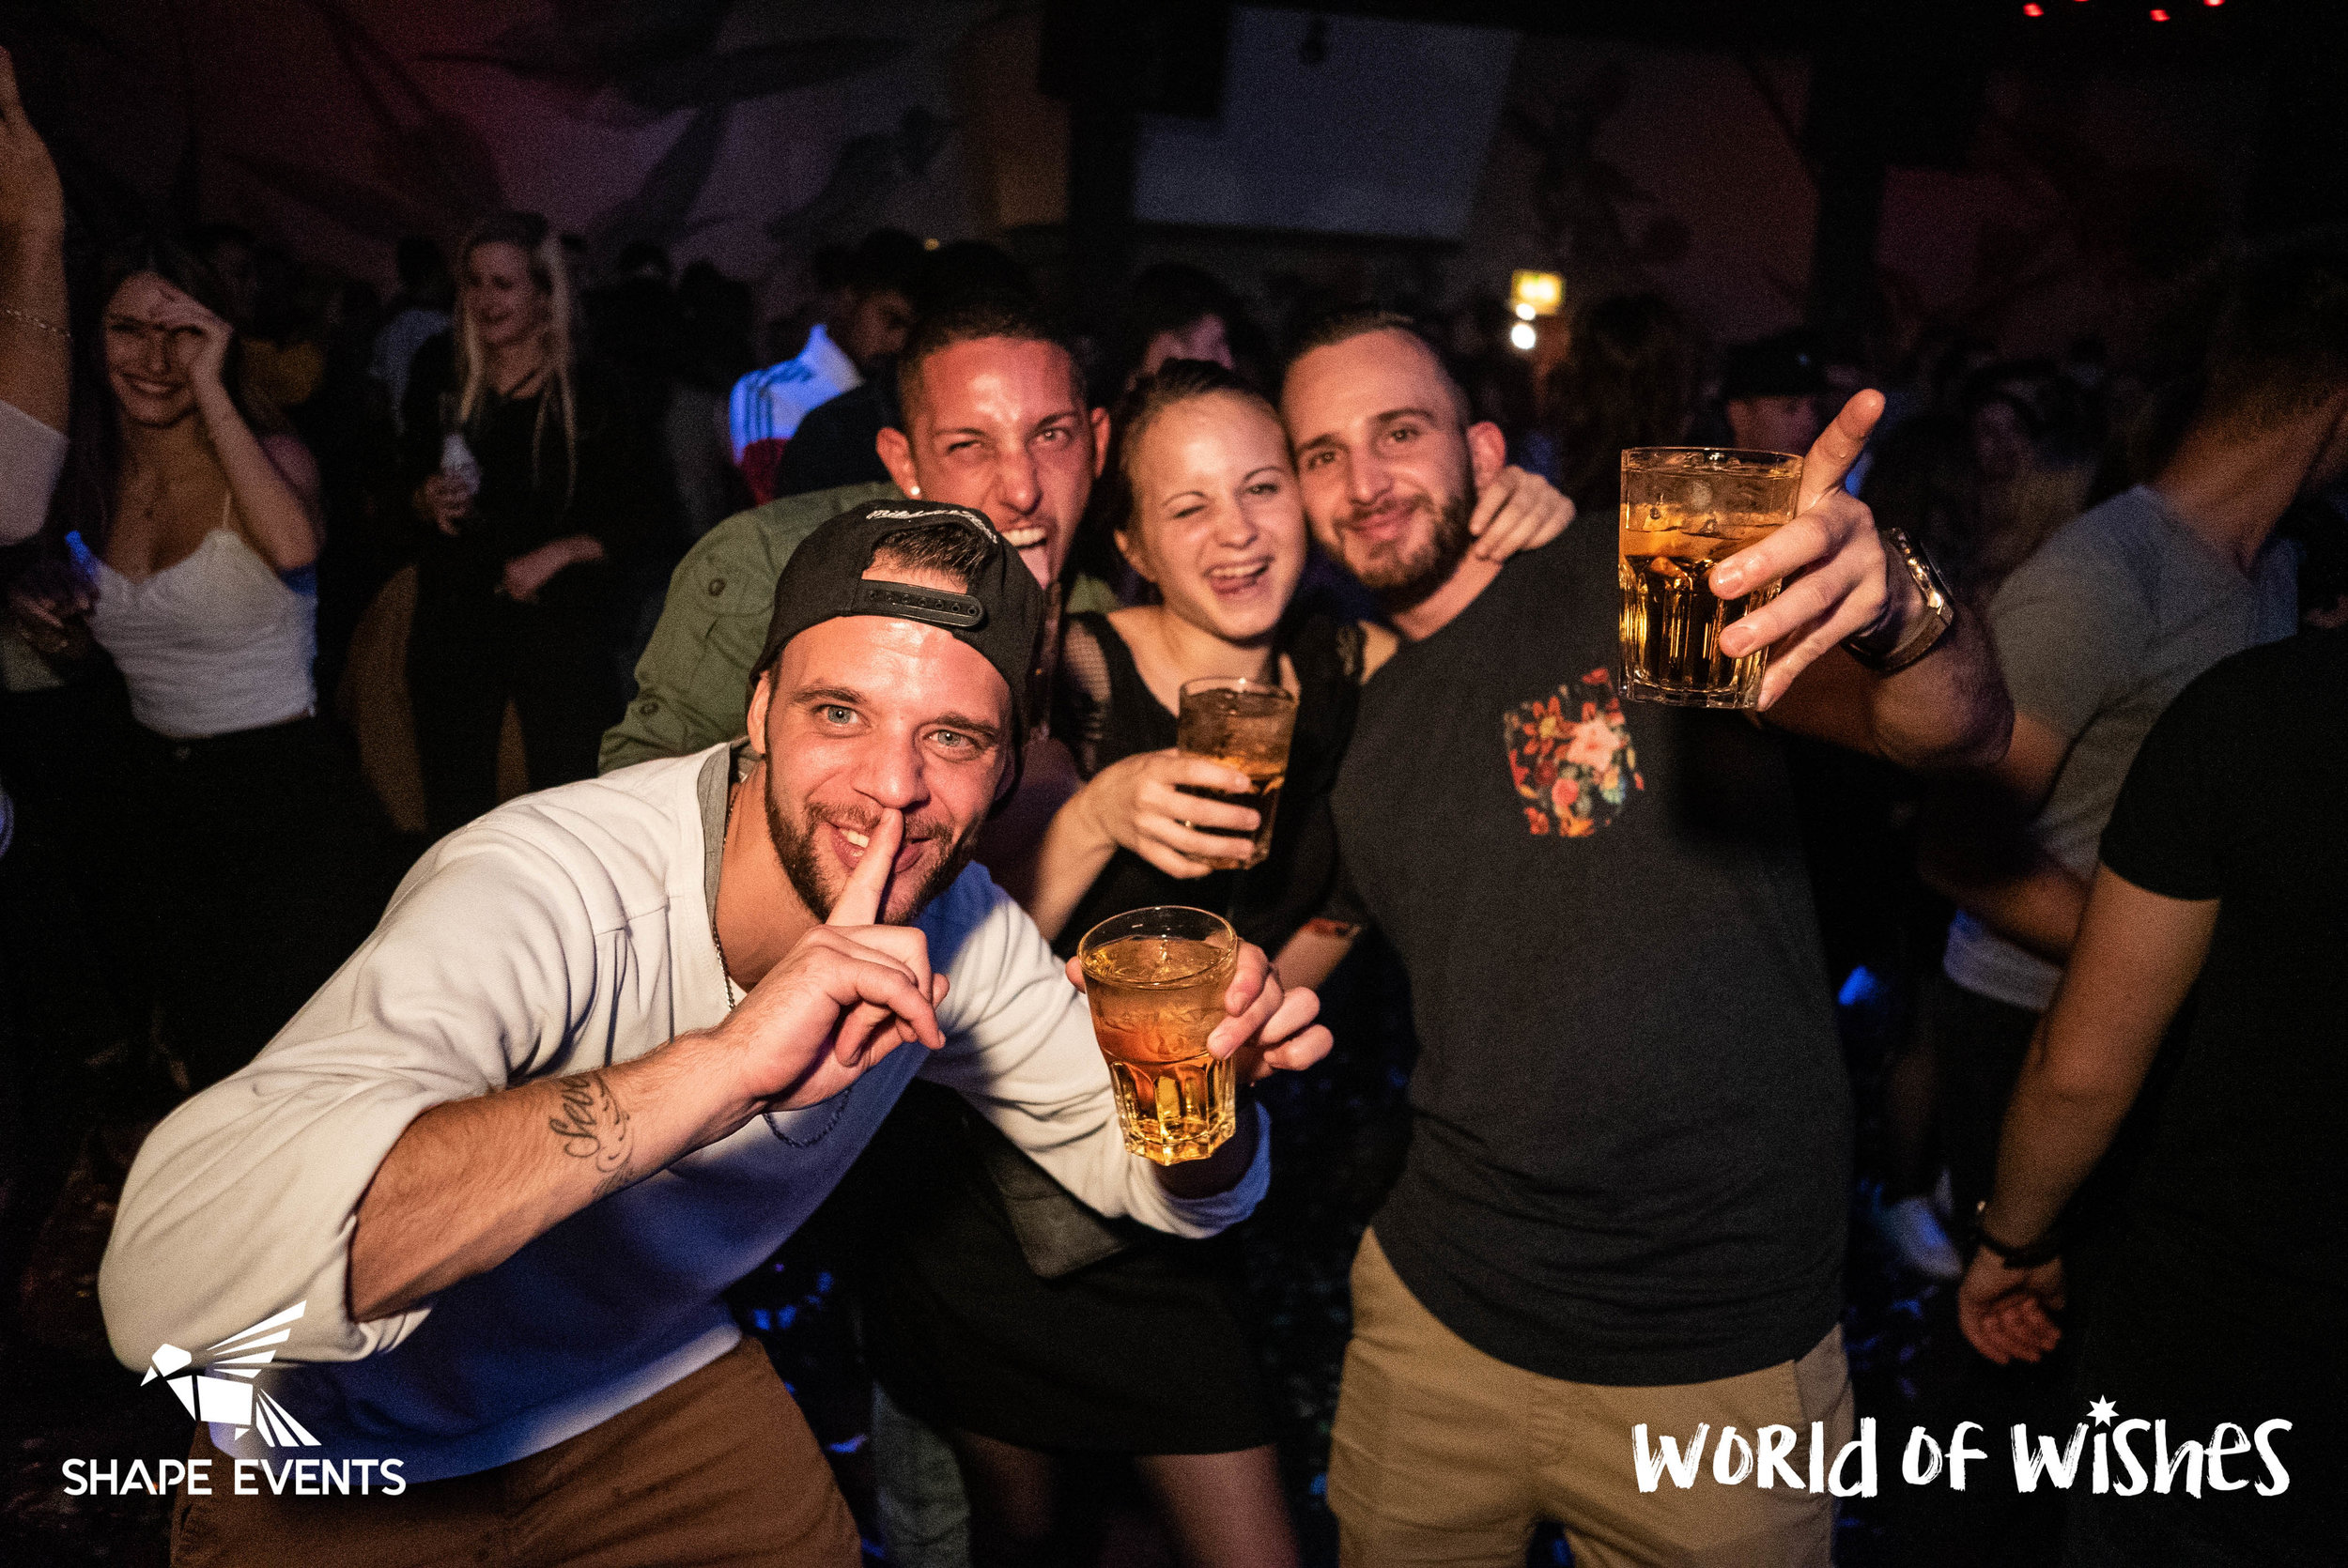 WordOfWishes_Party_Guest-02268.jpg